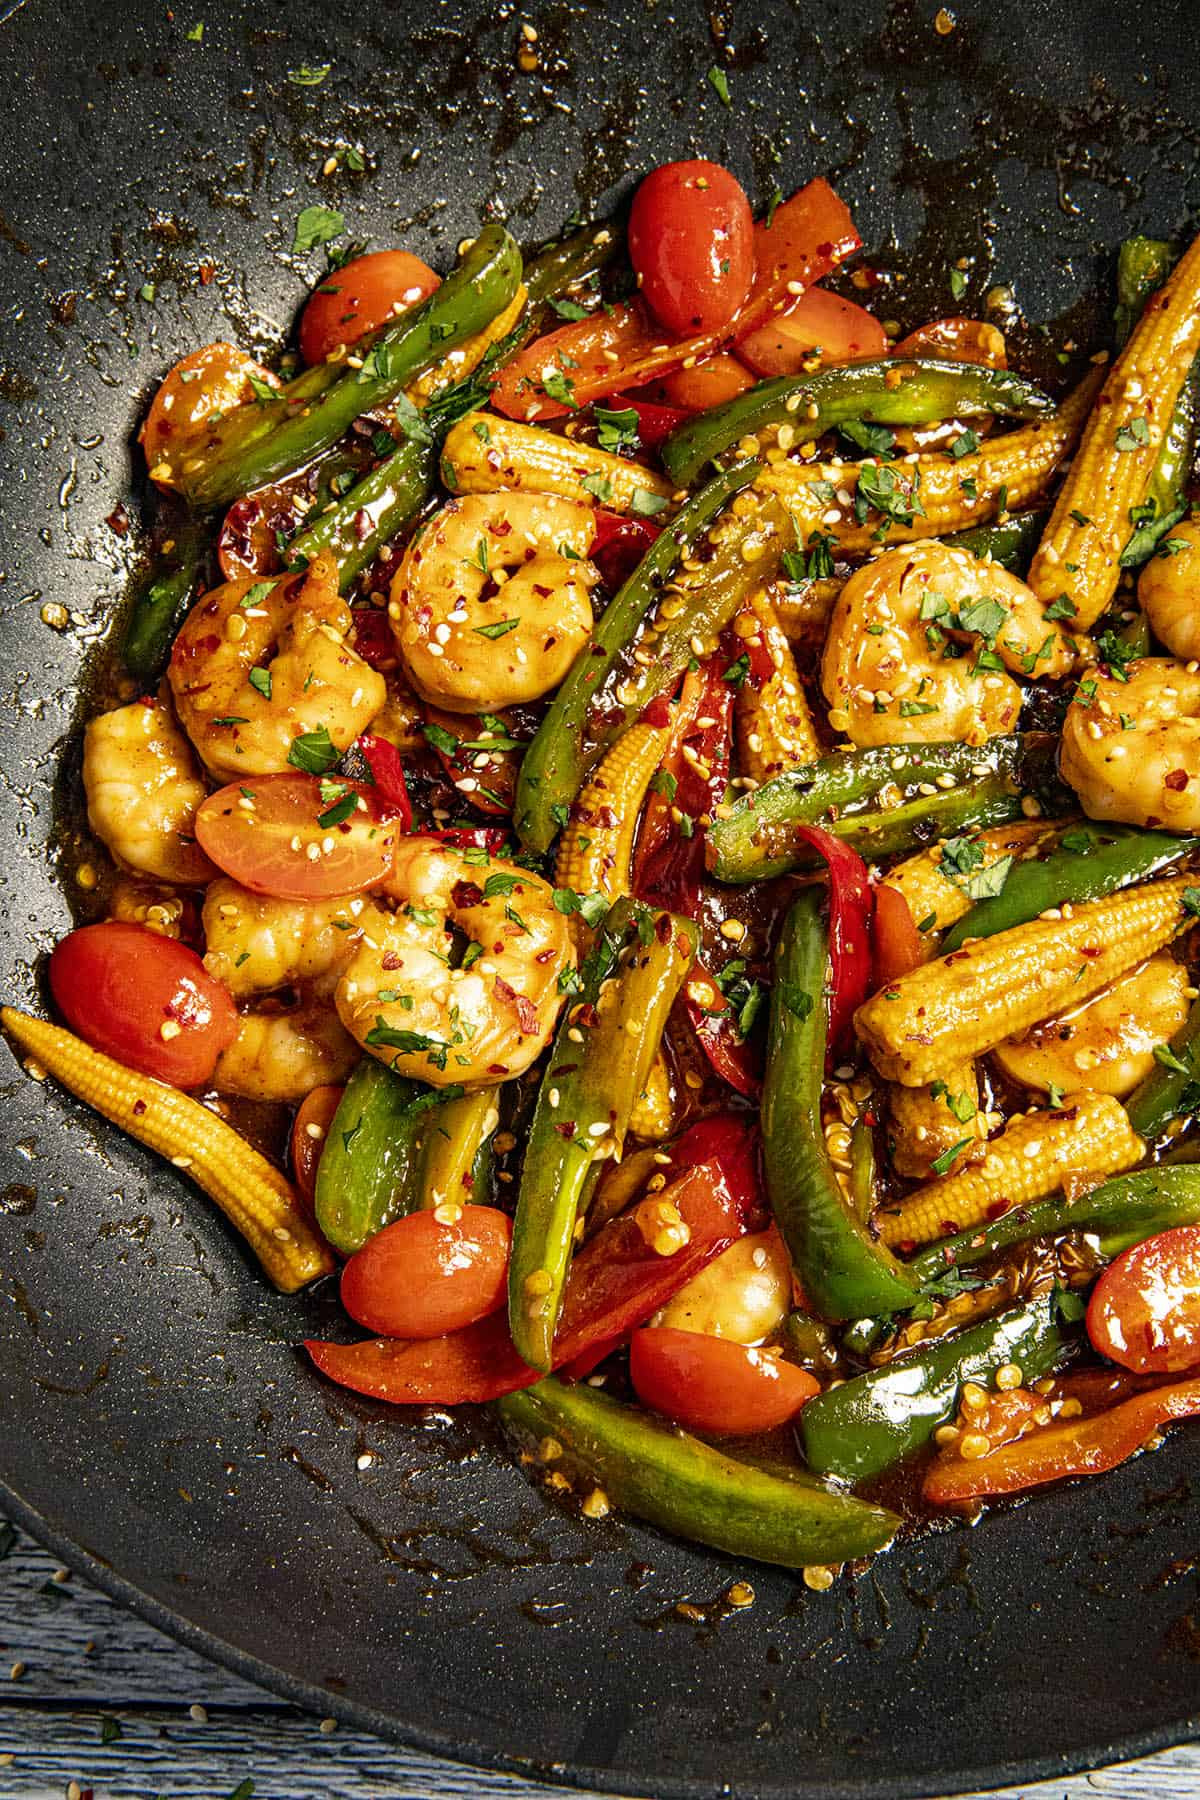 Teriyaki Shrimp Stir Fry in a hot pan, ready to serve